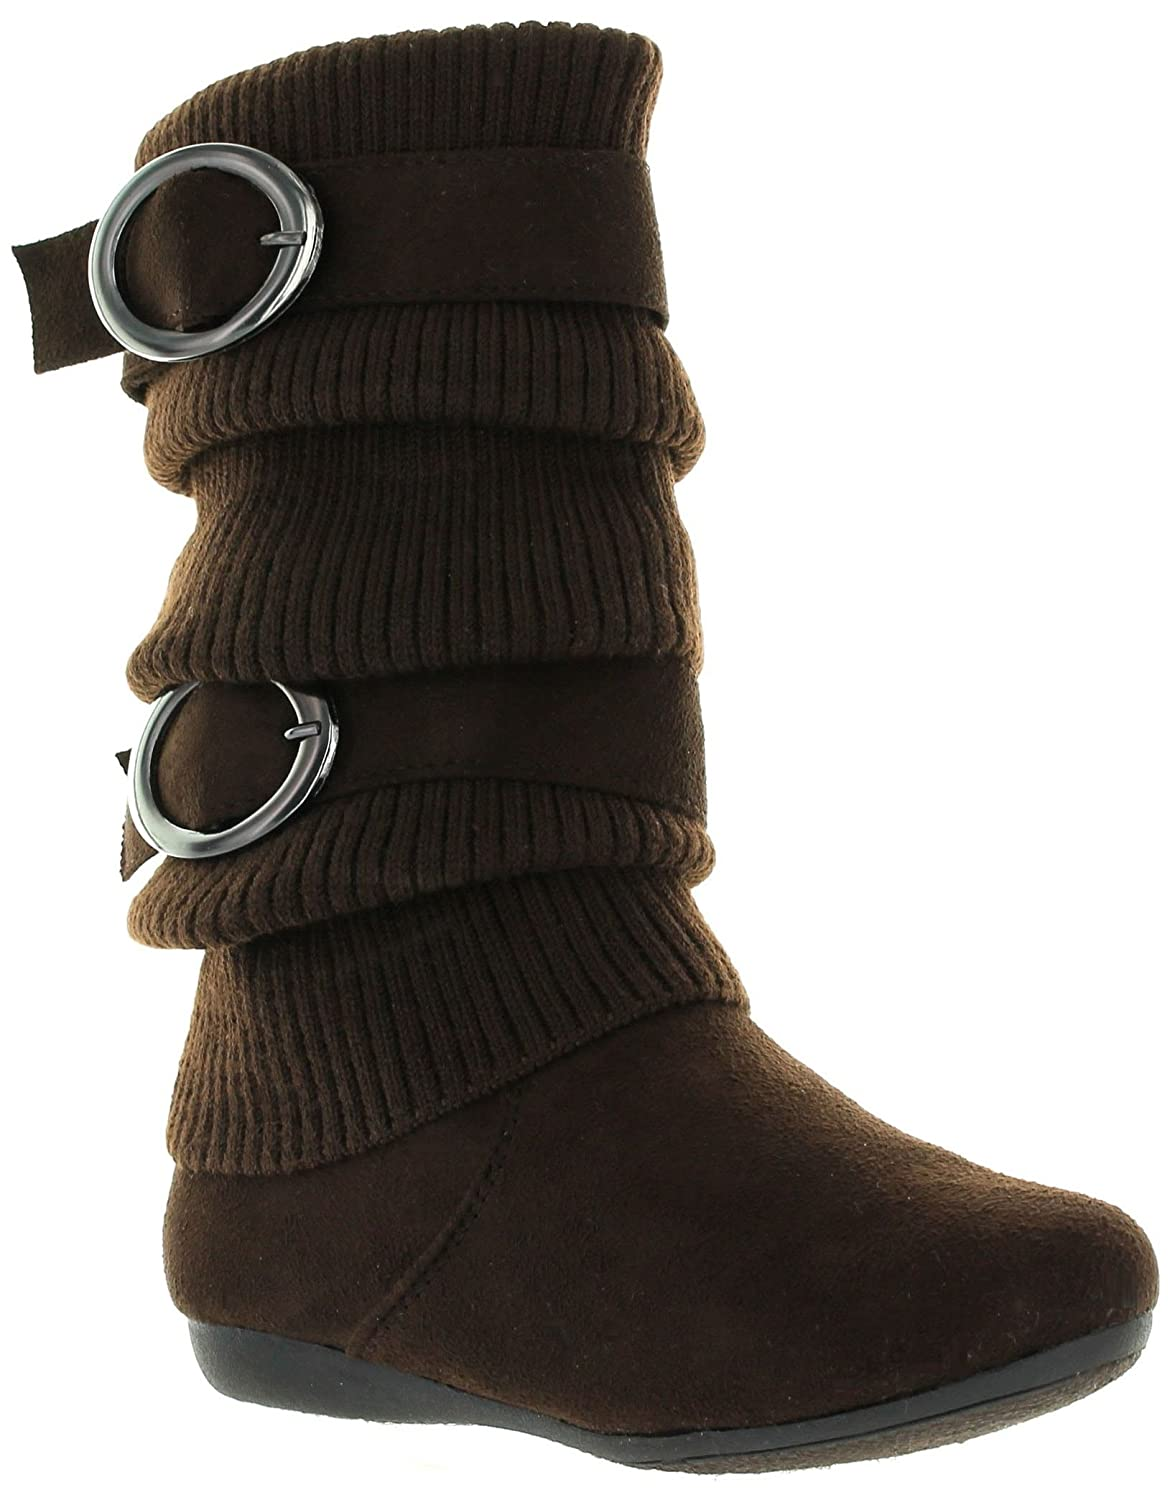 11 M Little Kid, BrownZARA EyesOnStyle New Girls Slouch Comf Tall Midcalf Suede Winter Boots Shoes